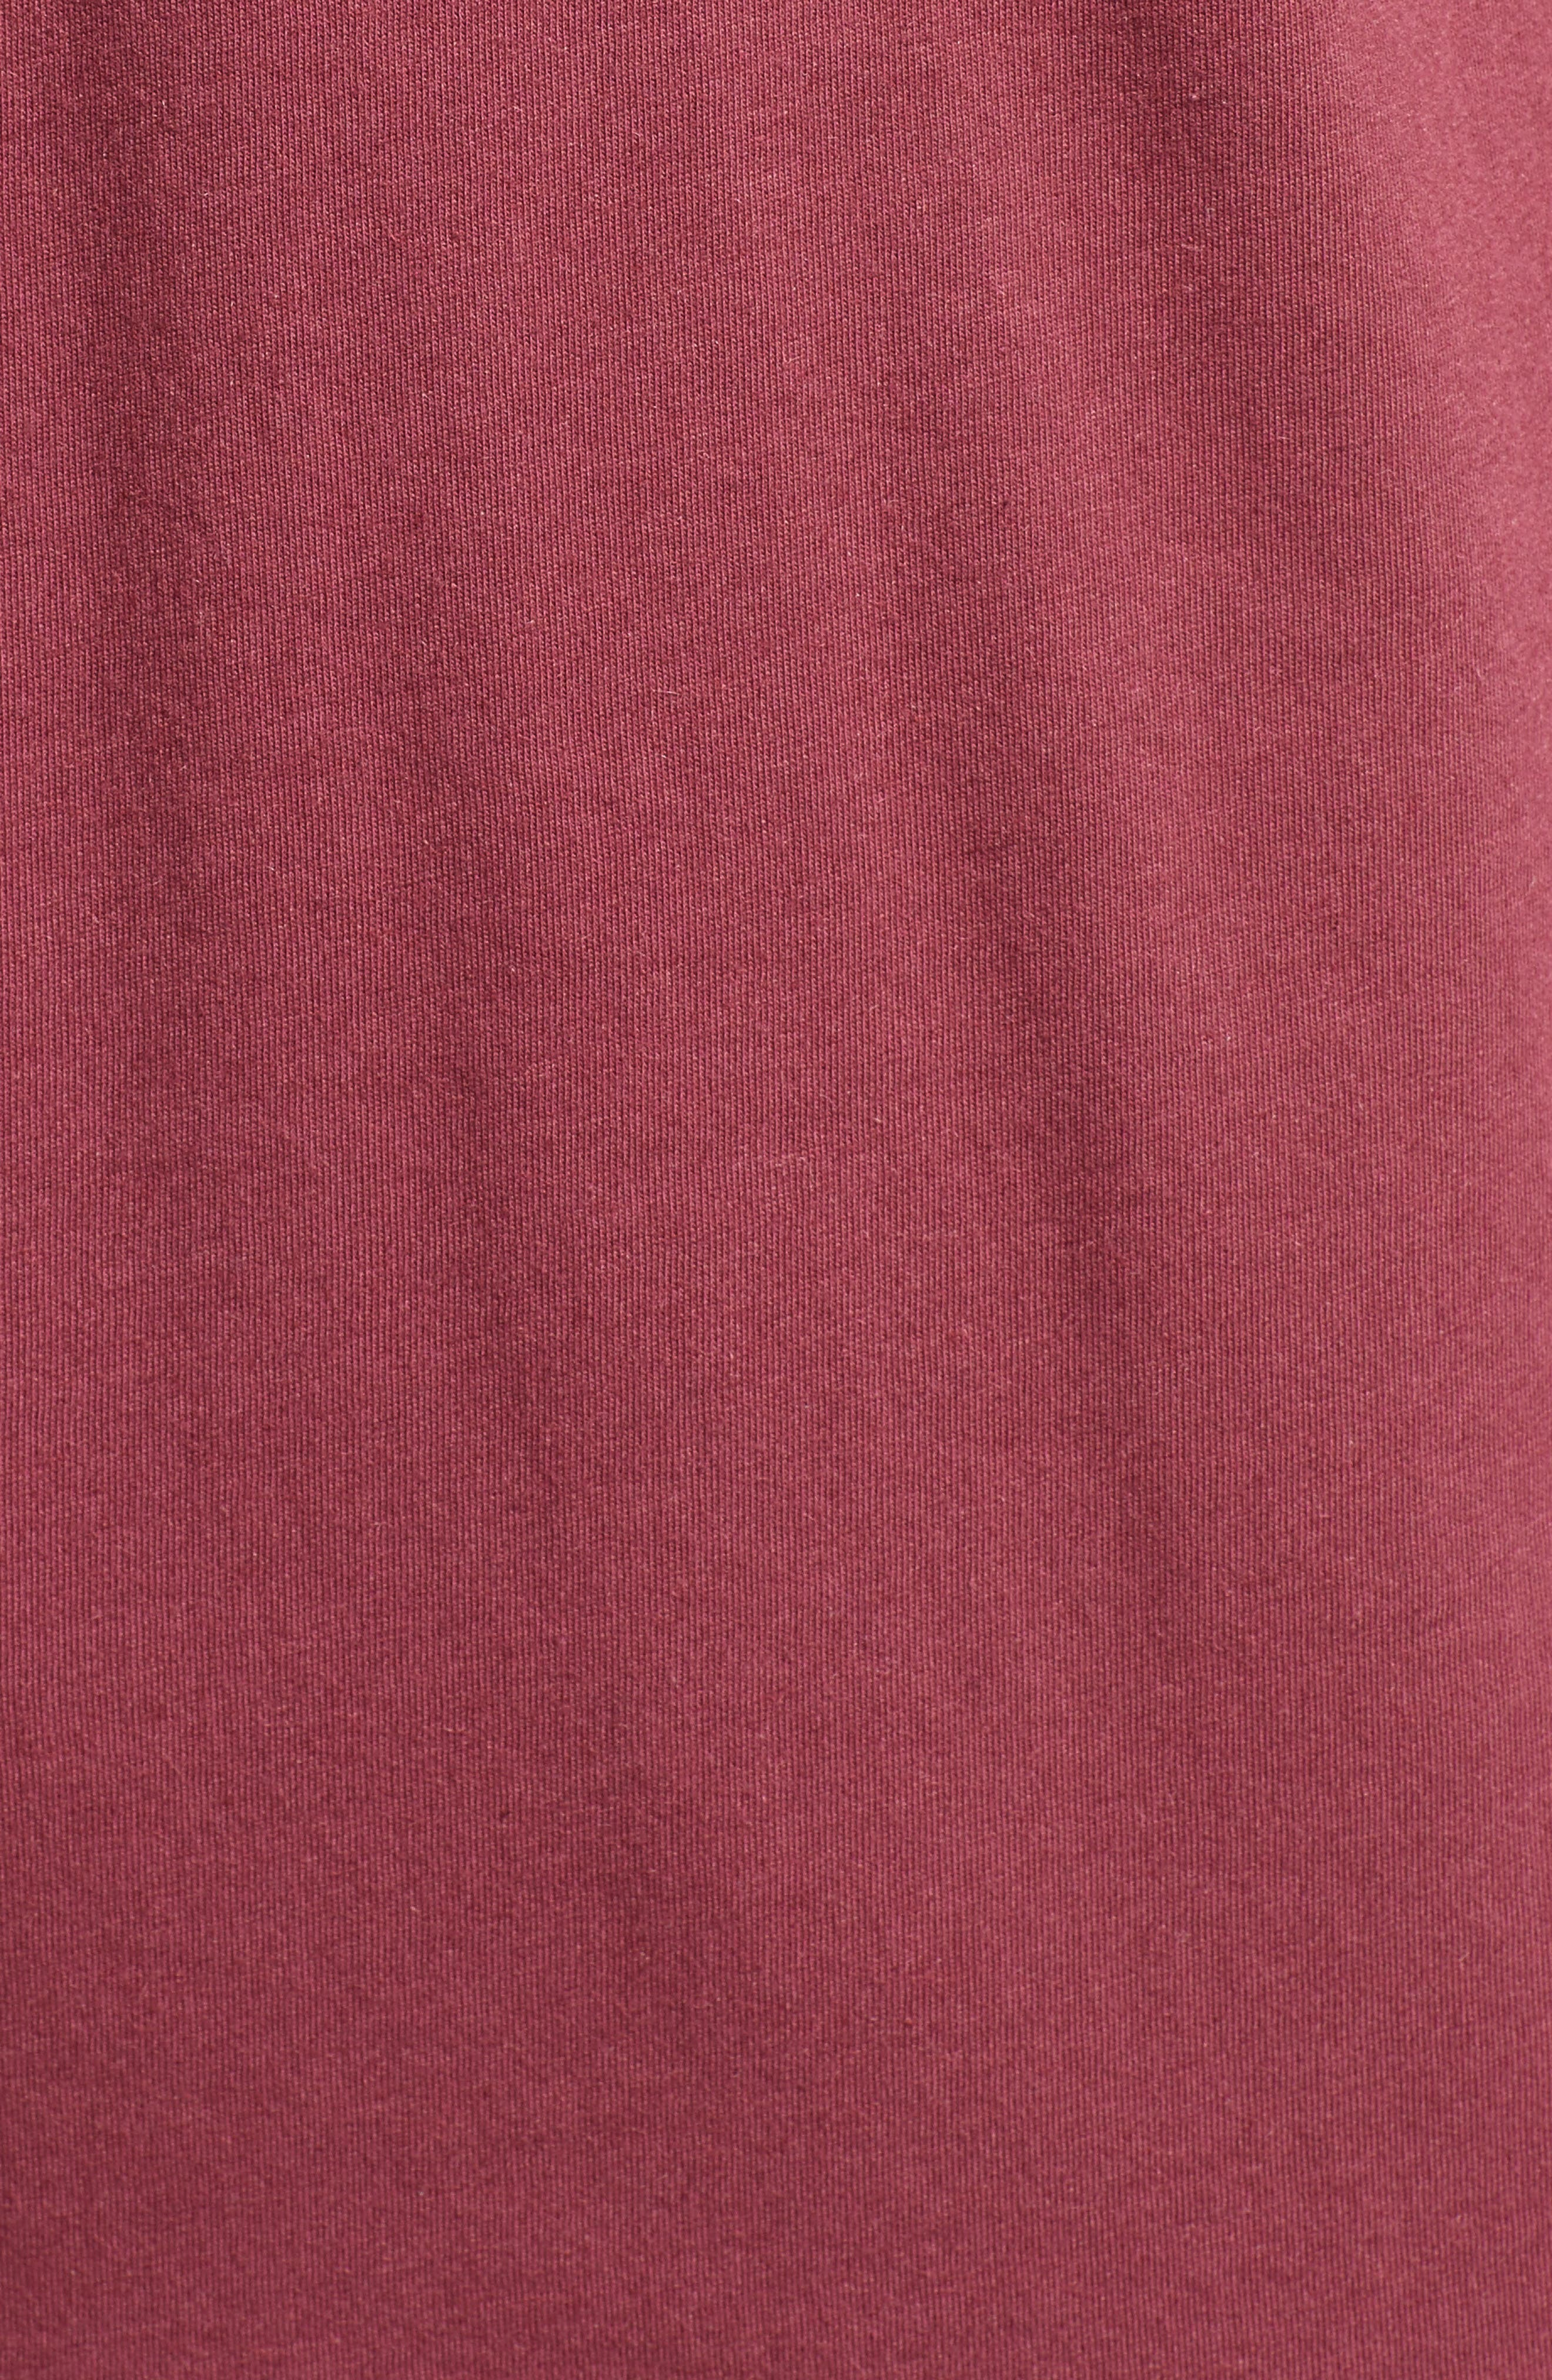 Pocket T-Shirt,                             Alternate thumbnail 5, color,                             Red